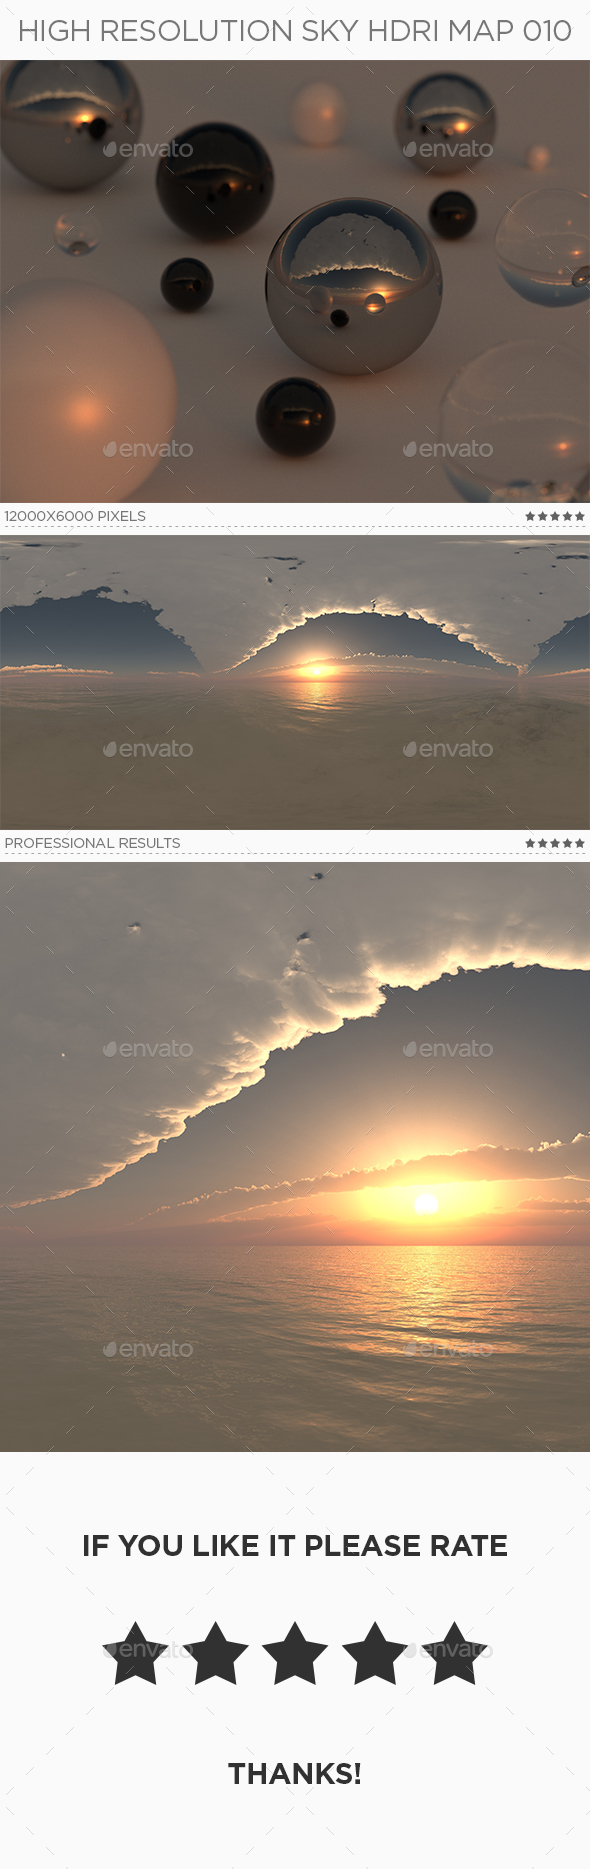 High Resolution Sky HDRi Map 010 - 3DOcean Item for Sale